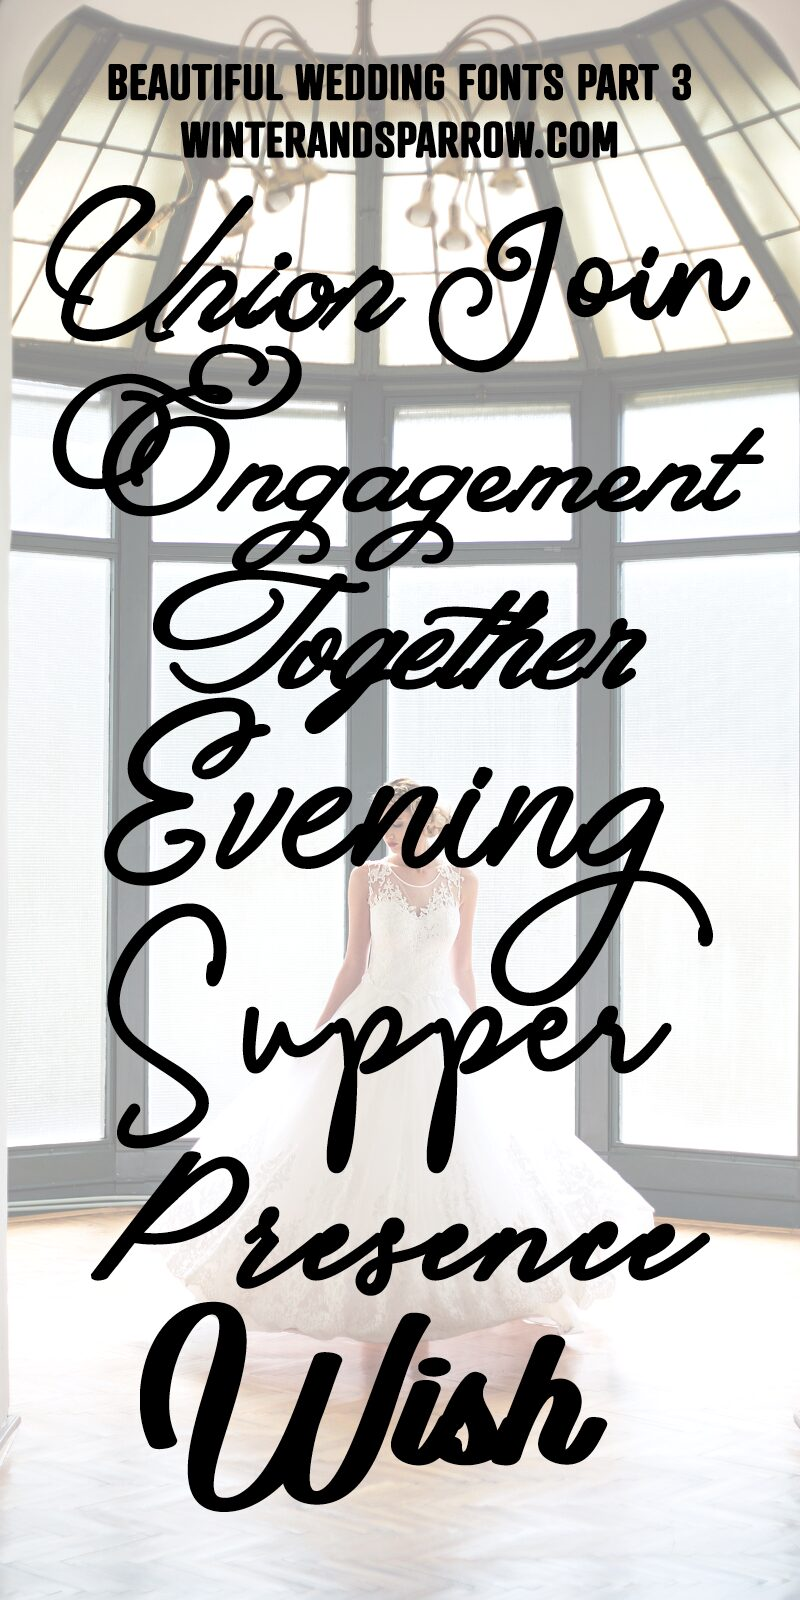 20 {More} Beautiful Wedding Fonts: Calligraphy + Hand-Lettered [free for personal use] | winterandsparrow.com #freecalligraphyfonts #freeweddingfonts #freehandletteredfonts #calligraphy